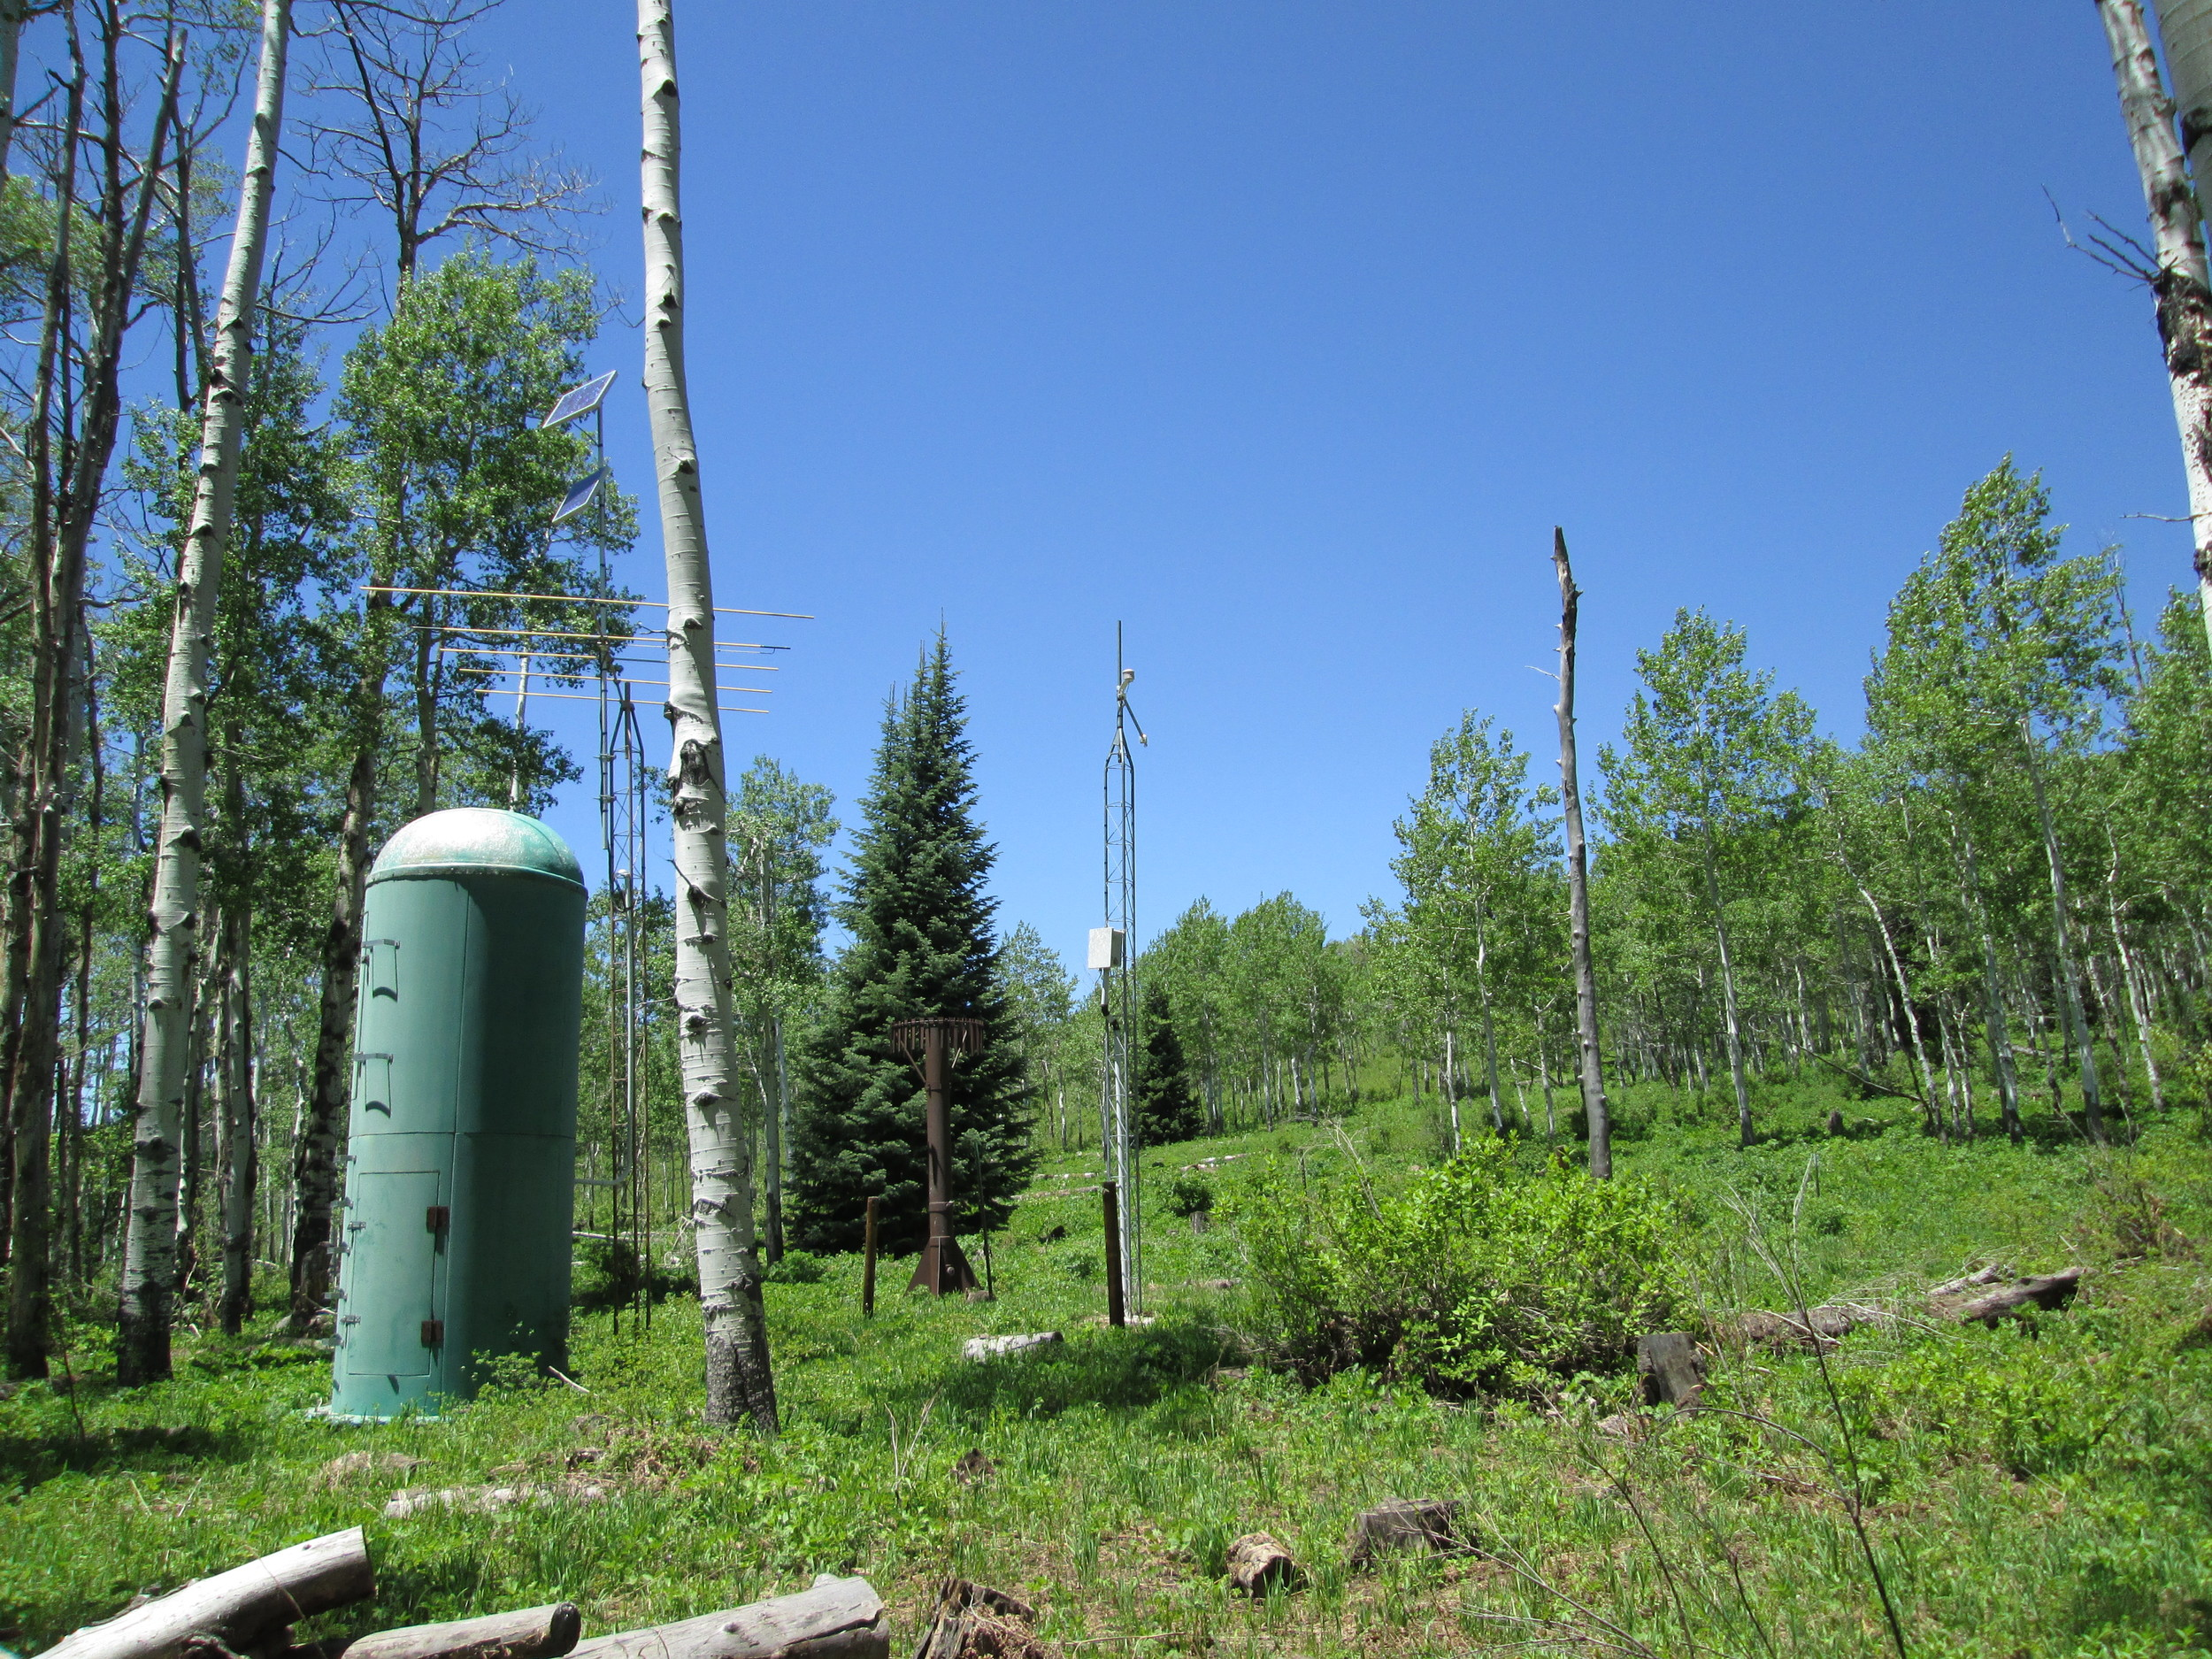 As of the June 4 visit the McClure Pass Snotel and adjacent CODOS snow pit site had long since lost all snowcover.